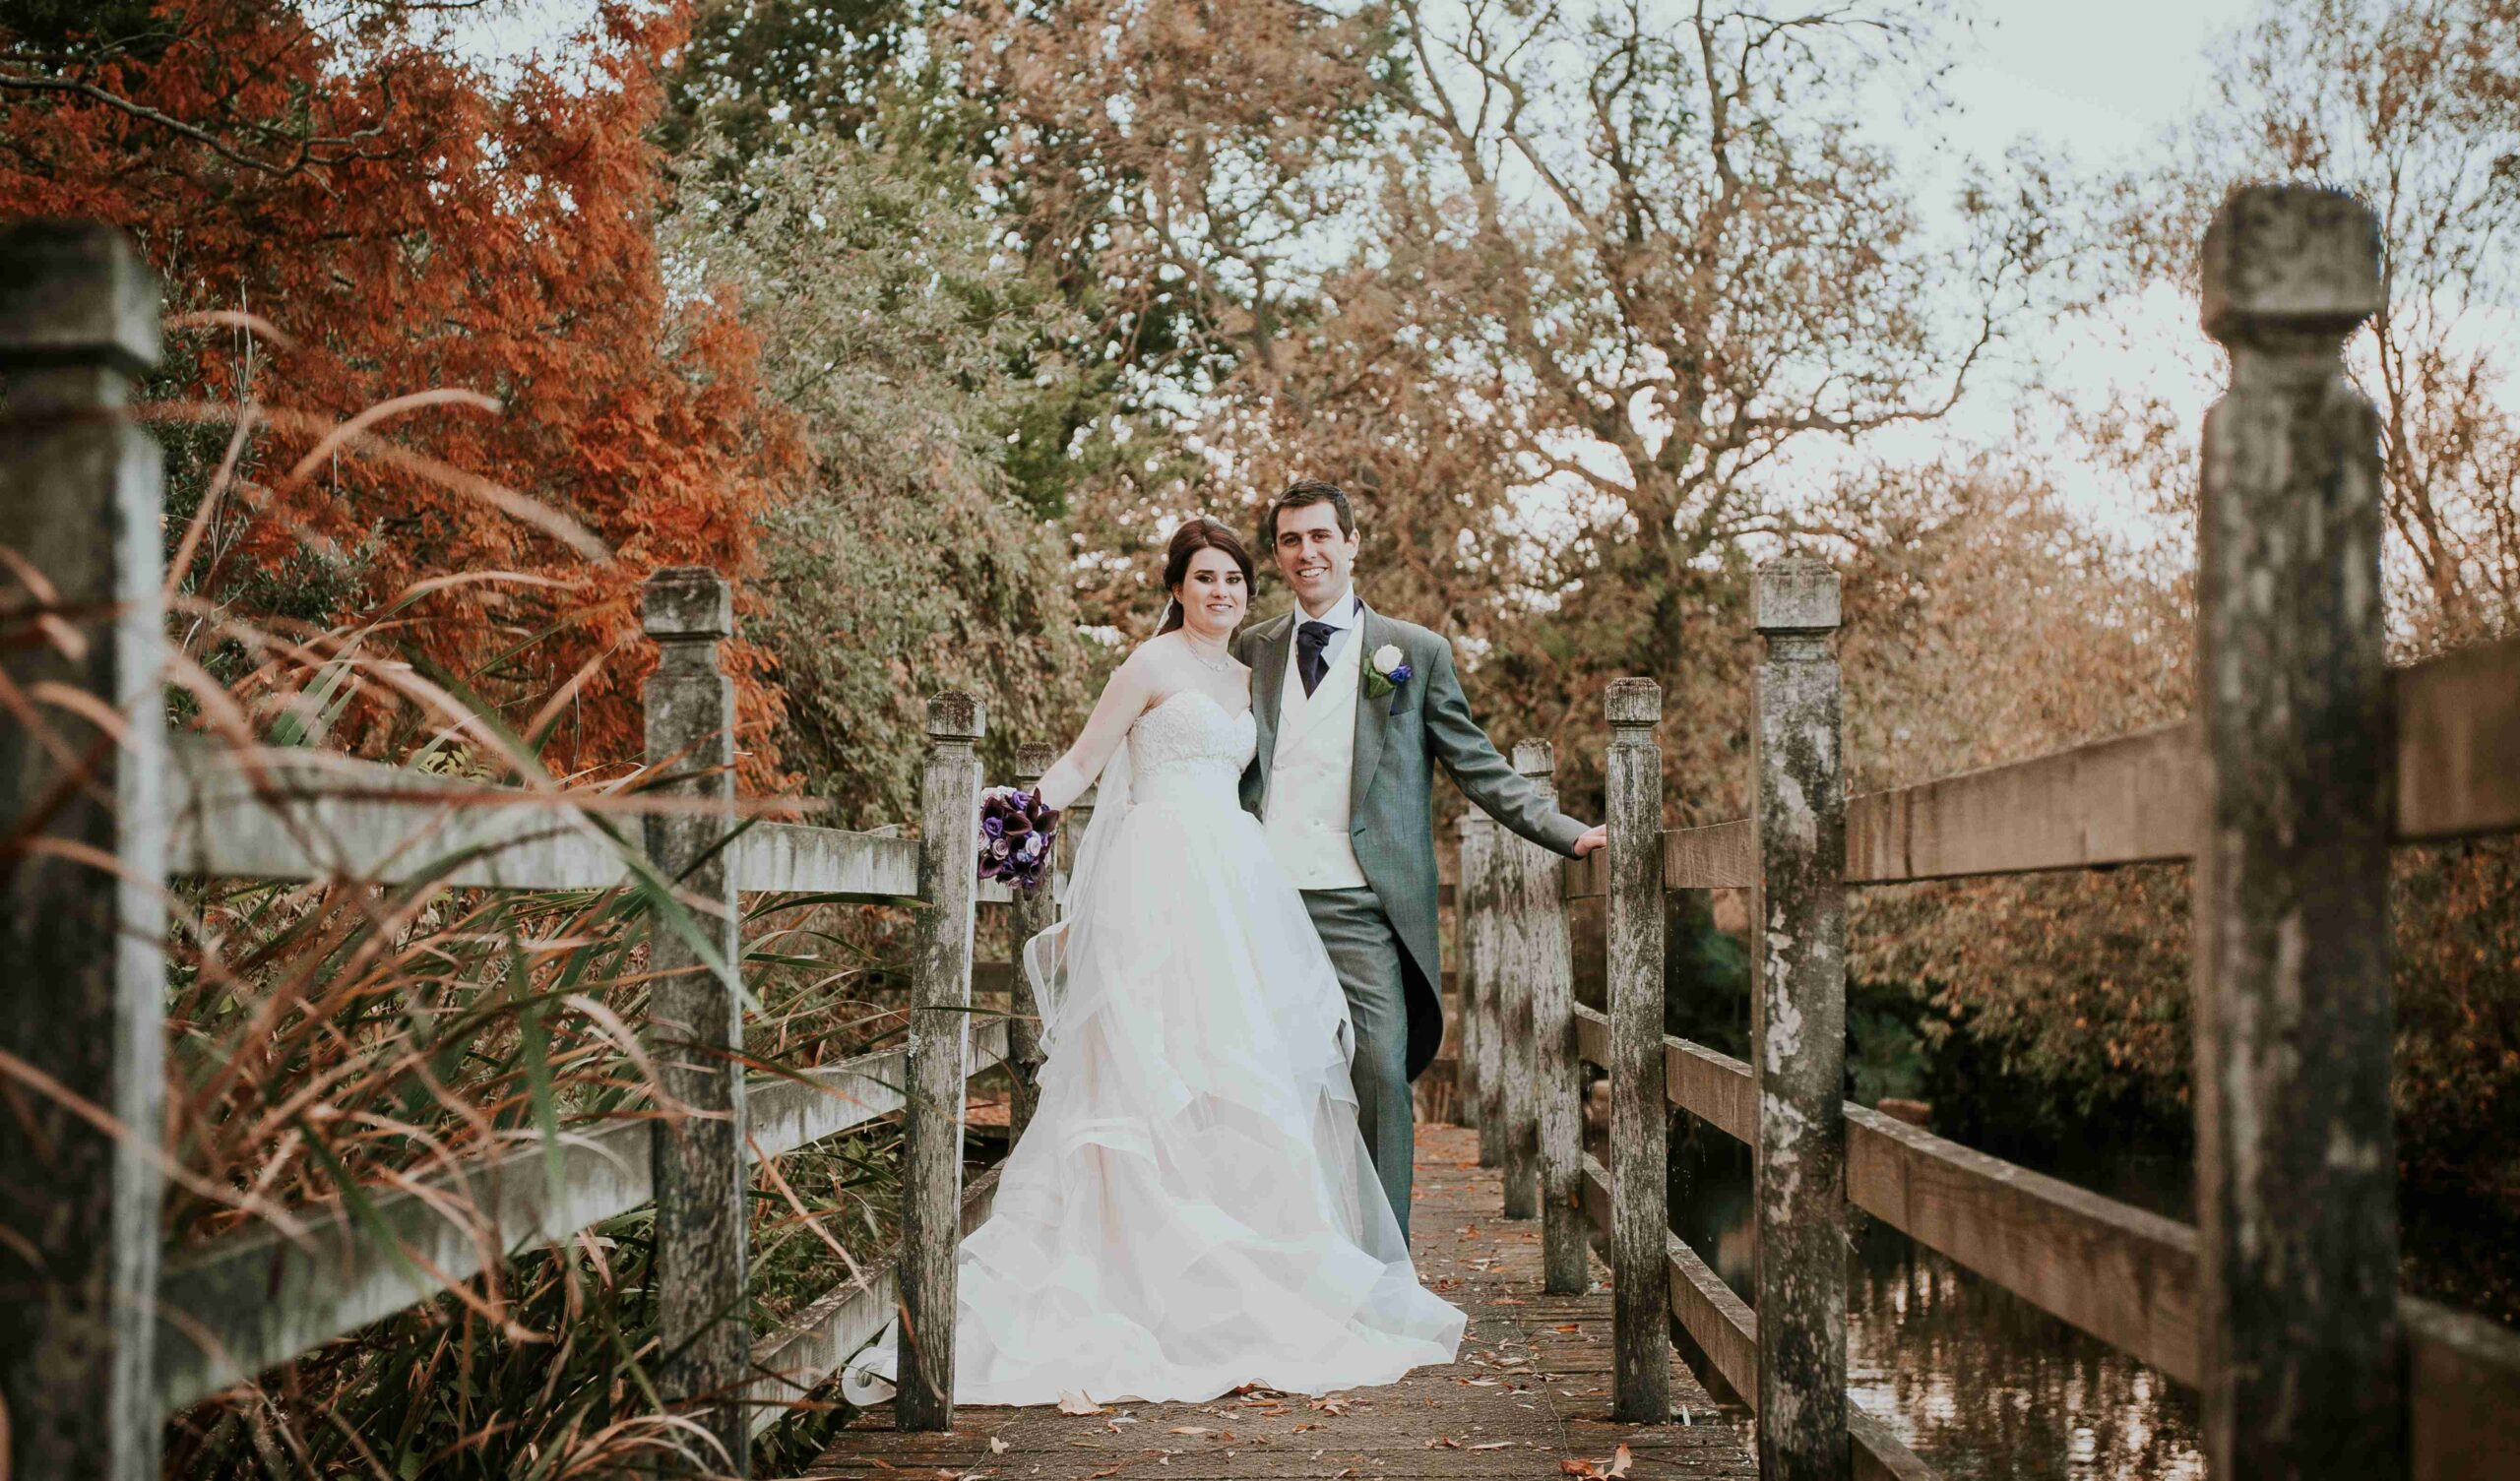 Bride and groom pictured on the boardwalk around pond